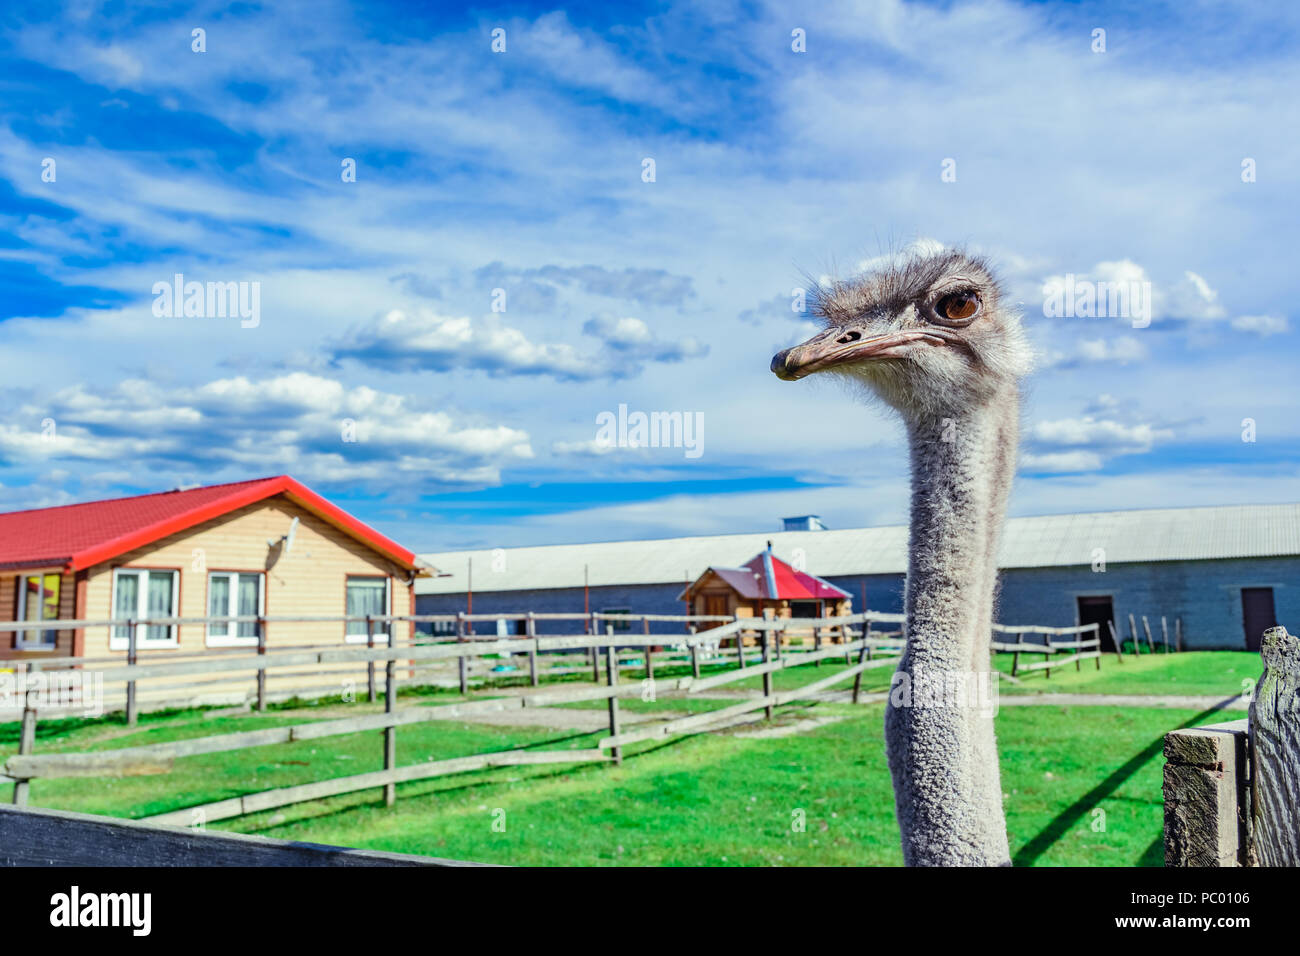 Ostrich in a farm with green grass and blue sky looking through fence - Stock Image